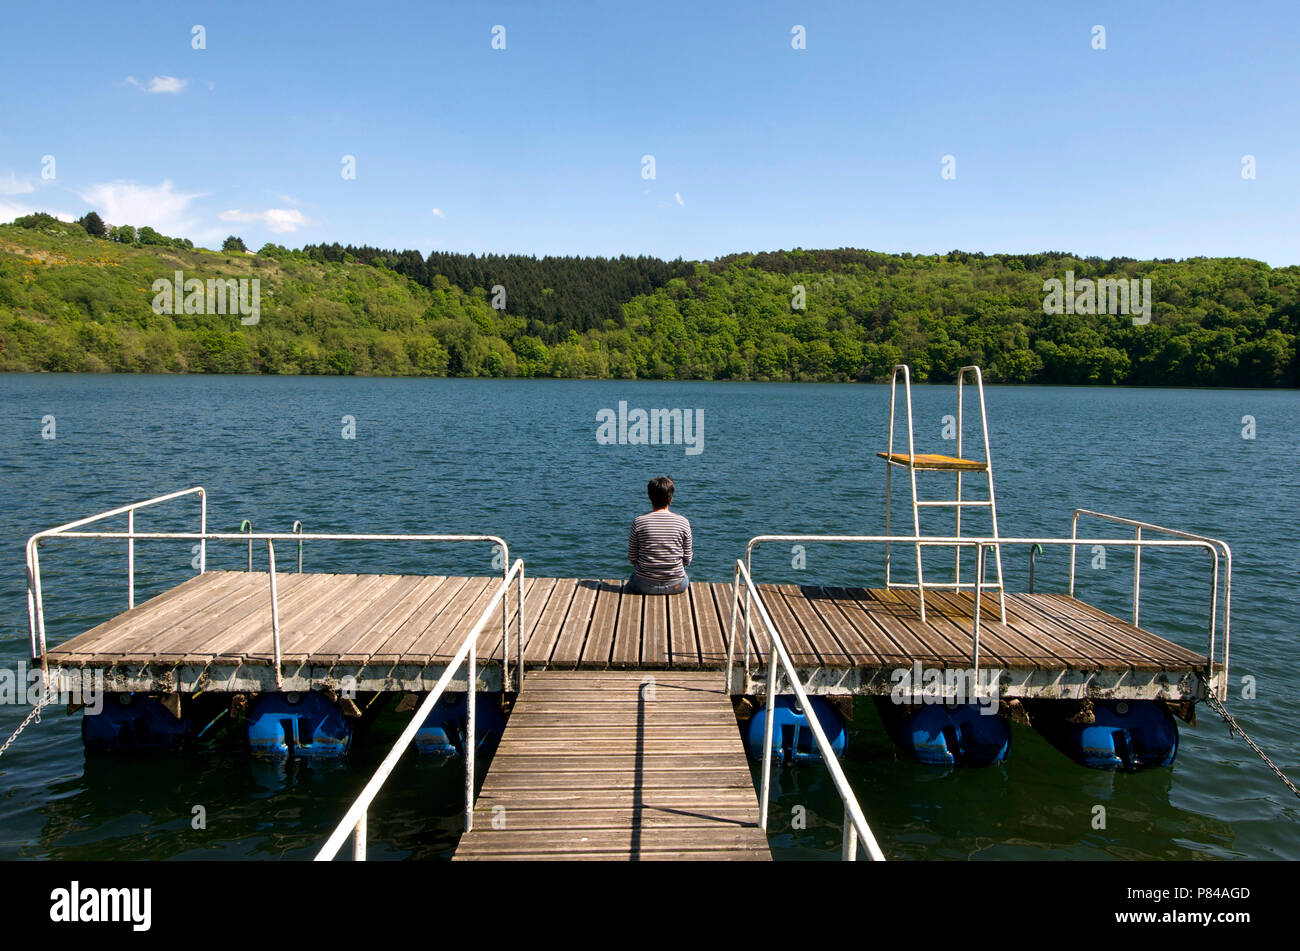 Woman sitting on a pontoon looking out over a lake, Auvergne, France - Stock Image